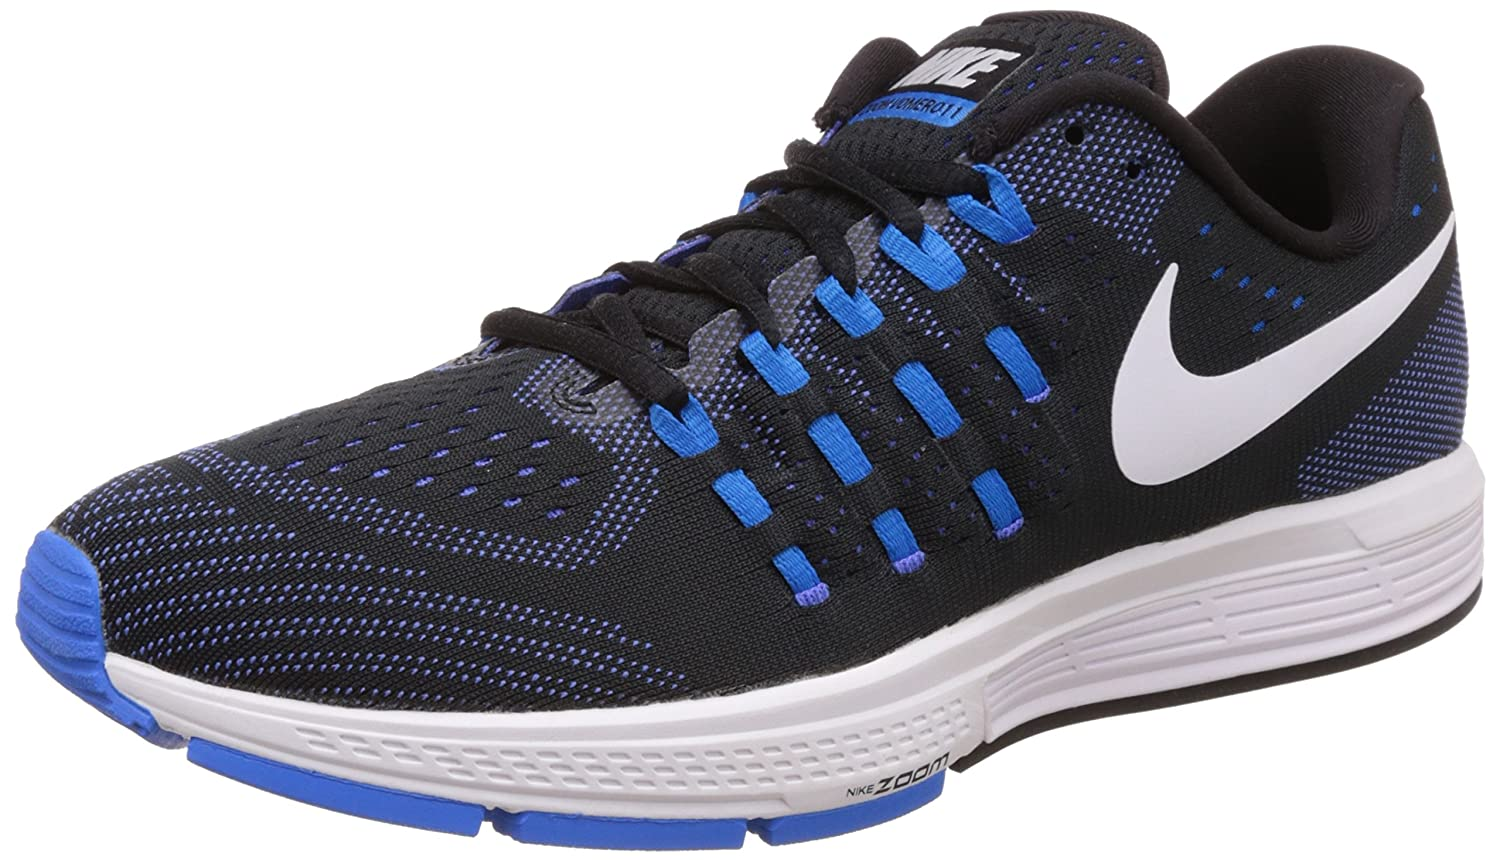 Nike Men's Air Zoom Vomero 11 Running Shoes B01GE1KU4O 9 D(M) US|Black/White/Photo Blue/Racer Blue